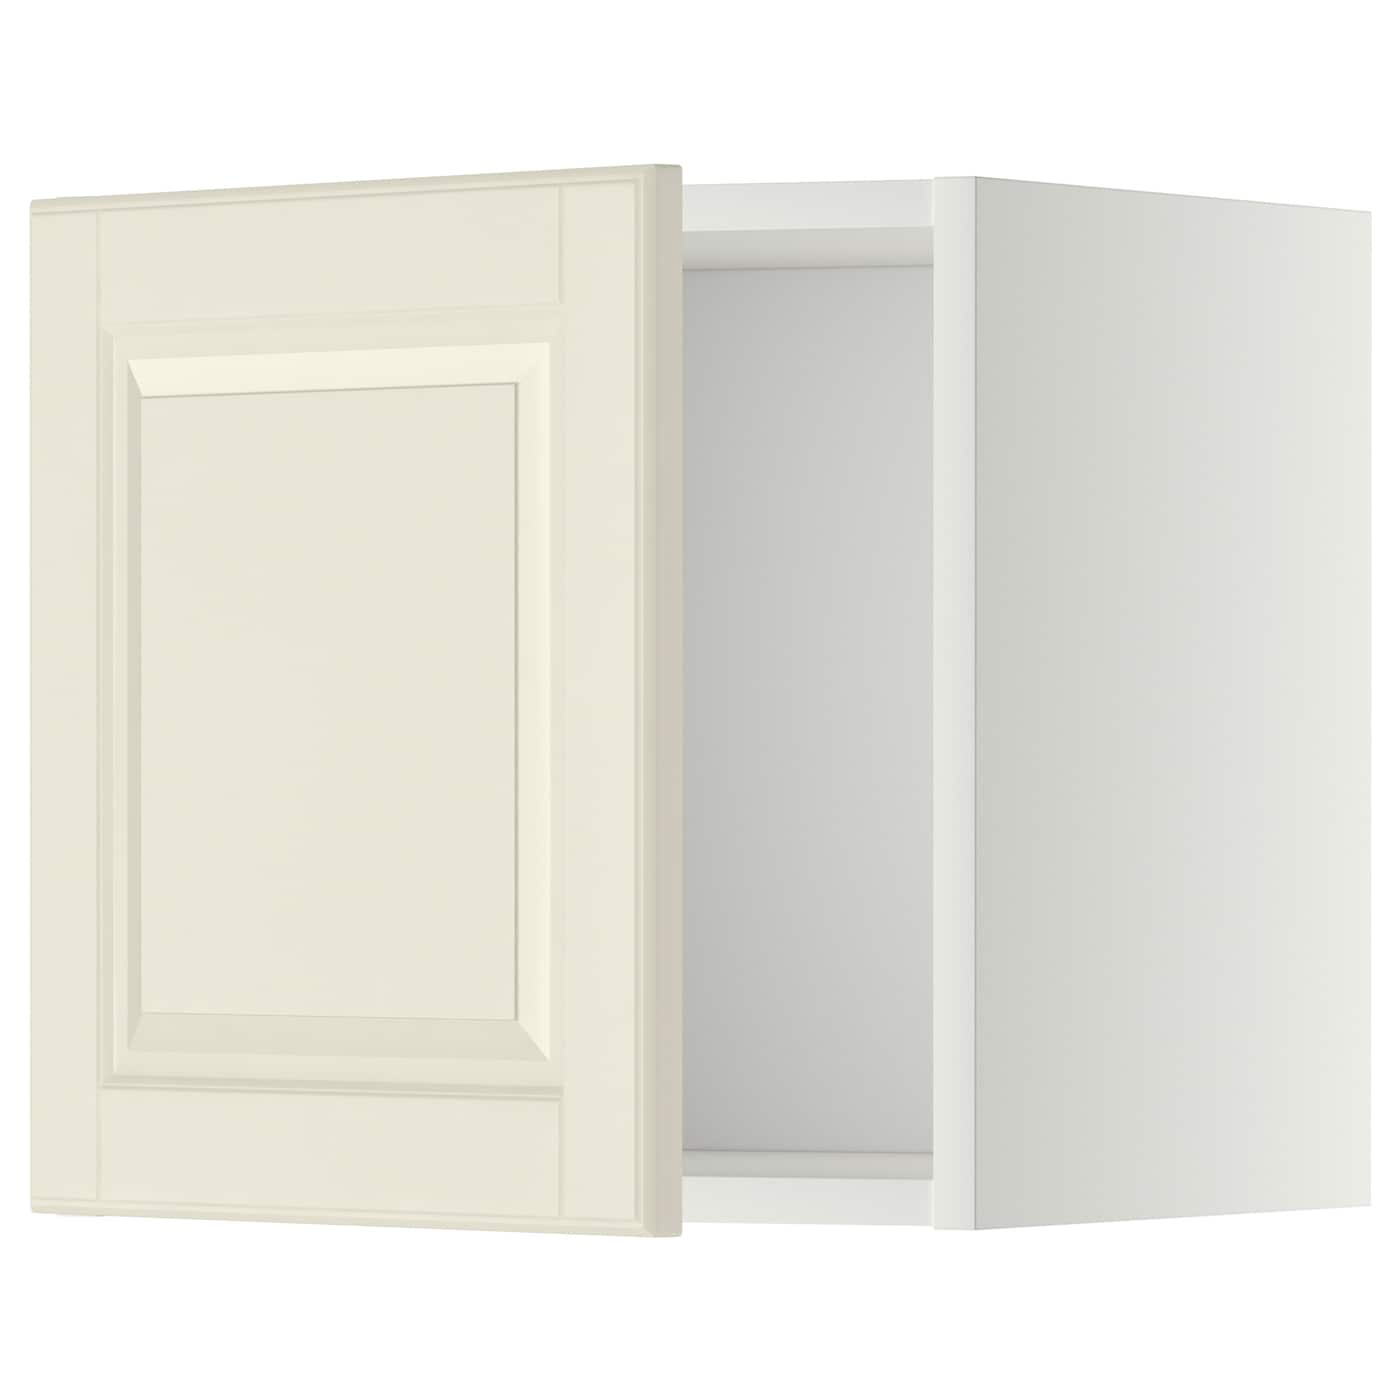 metod wall cabinet white bodbyn off white 40x40 cm ikea. Black Bedroom Furniture Sets. Home Design Ideas